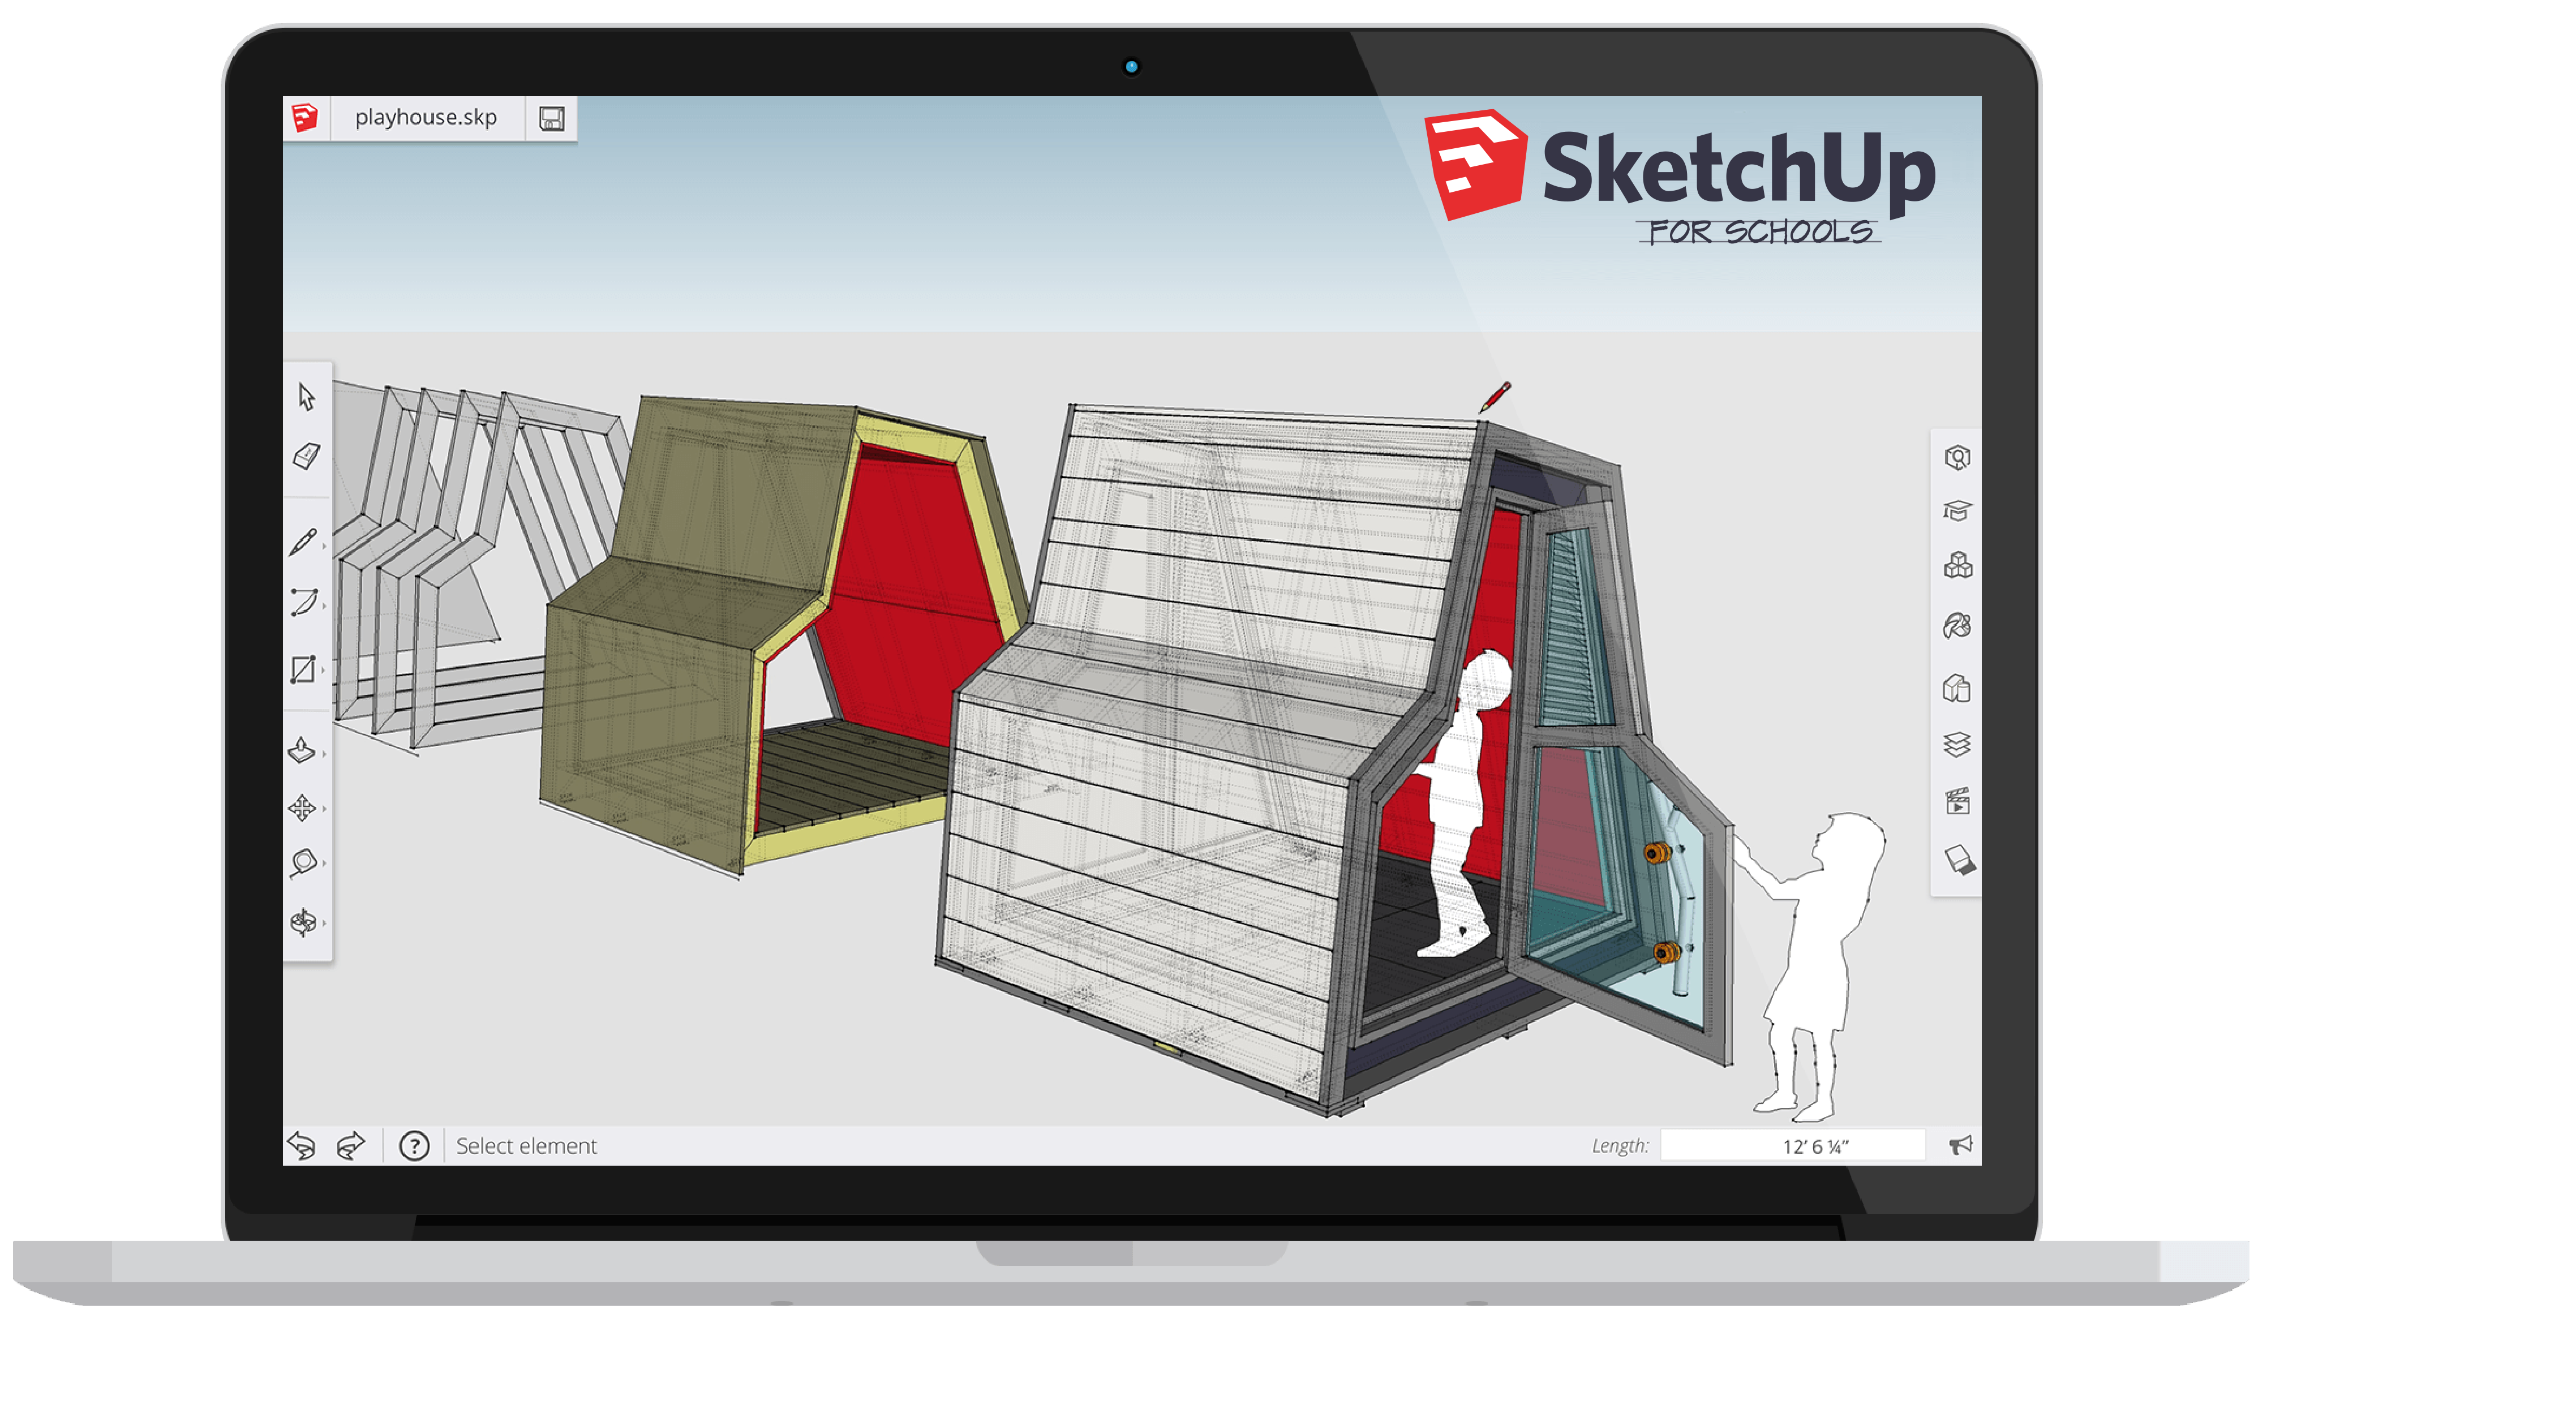 SketchUp for Schools is a browser-based version of SketchUp available to primary and secondary schools.